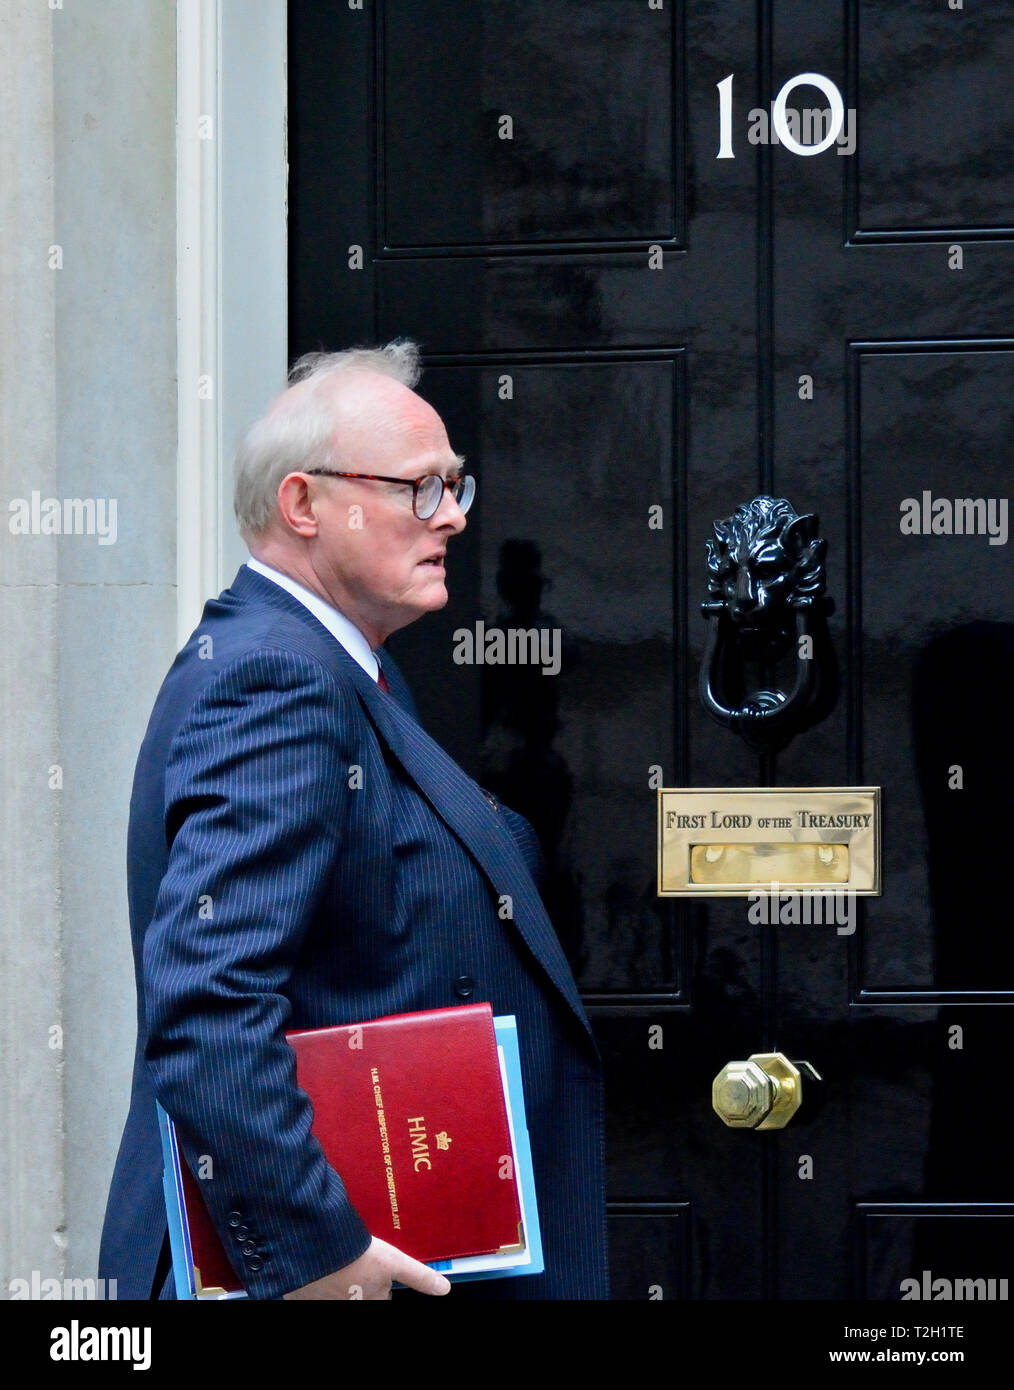 HM chief inspector of constabulary, Sir Tom Winsor, arriving at 10 Downing Street for a Knife Crime Summit, 1st April 2019 - Stock Image